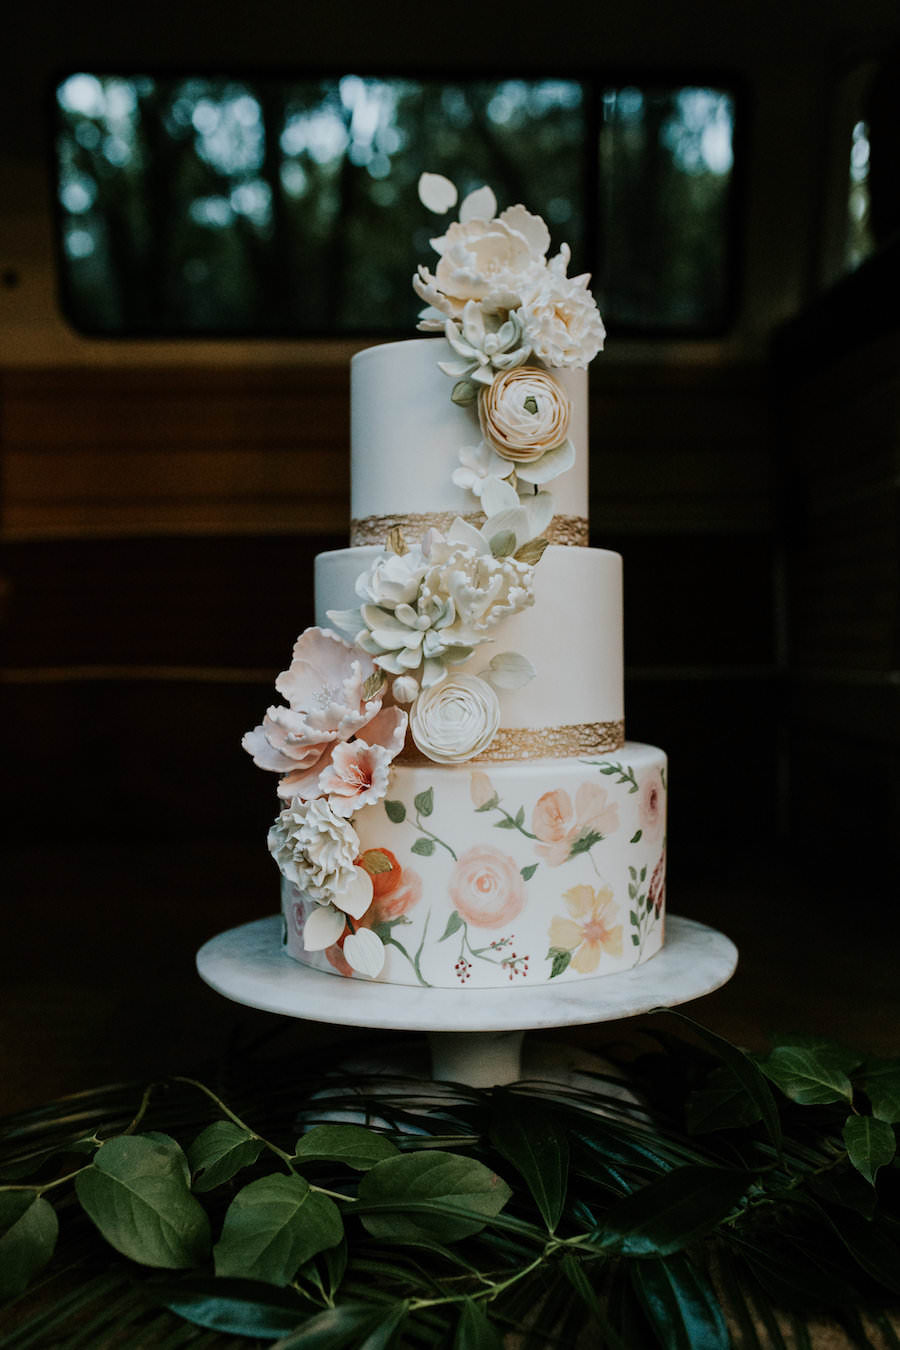 3-Tier Round Hand Painted Wedding Cake with Cascading Sugar Flowers and Gold Leaf Boarder   Retro Vintage Boho Wedding Inspiration   Tampa Wedding Cake Bakery Hands on Sweets